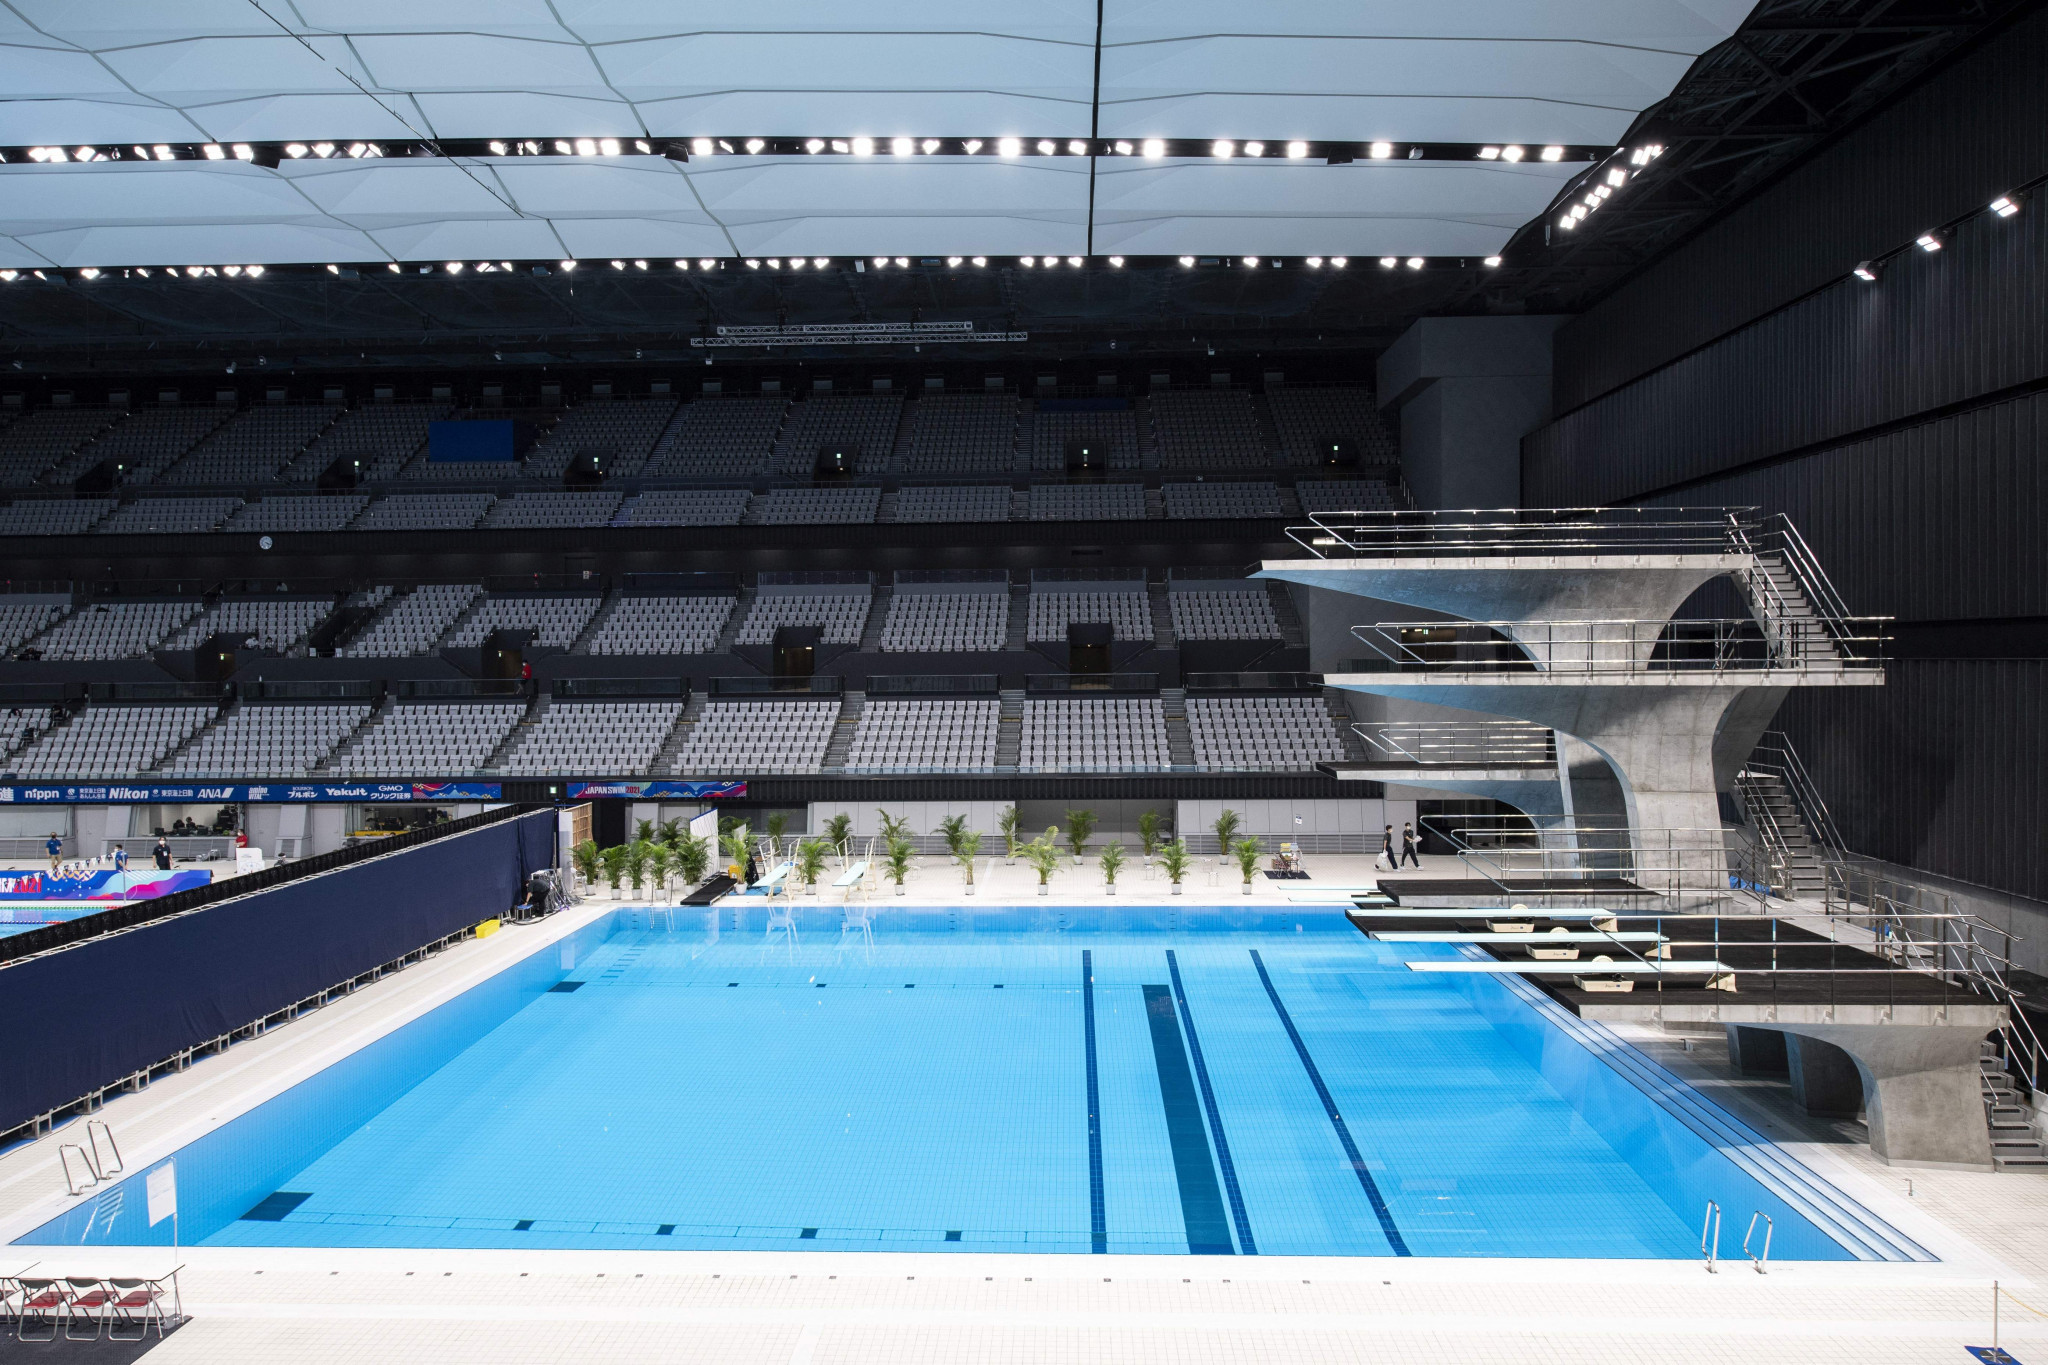 Artistic swimming and diving qualifiers for Tokyo 2020 to be held in May